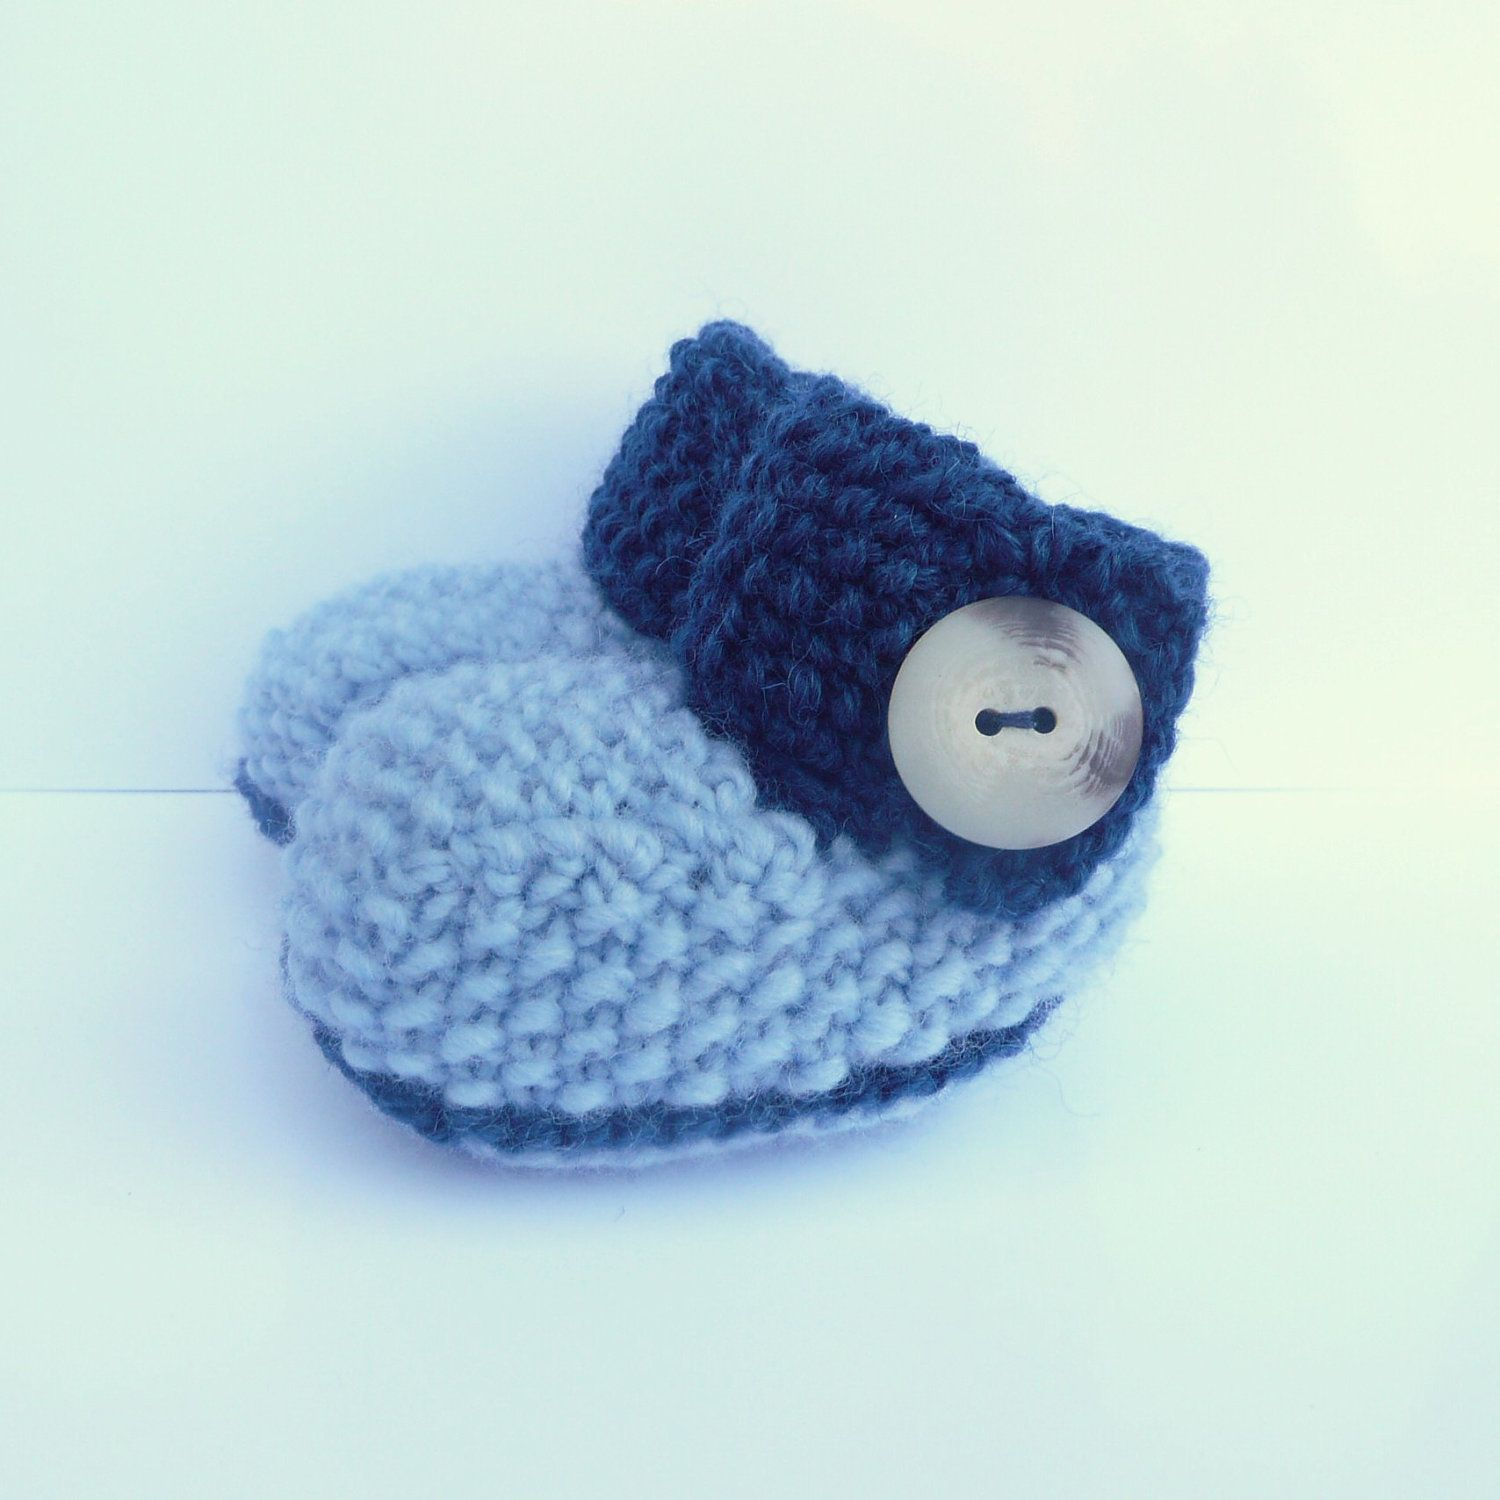 Luxury Ideas Of Knitted Baby Shoes - Cutest Baby Clothing and ...